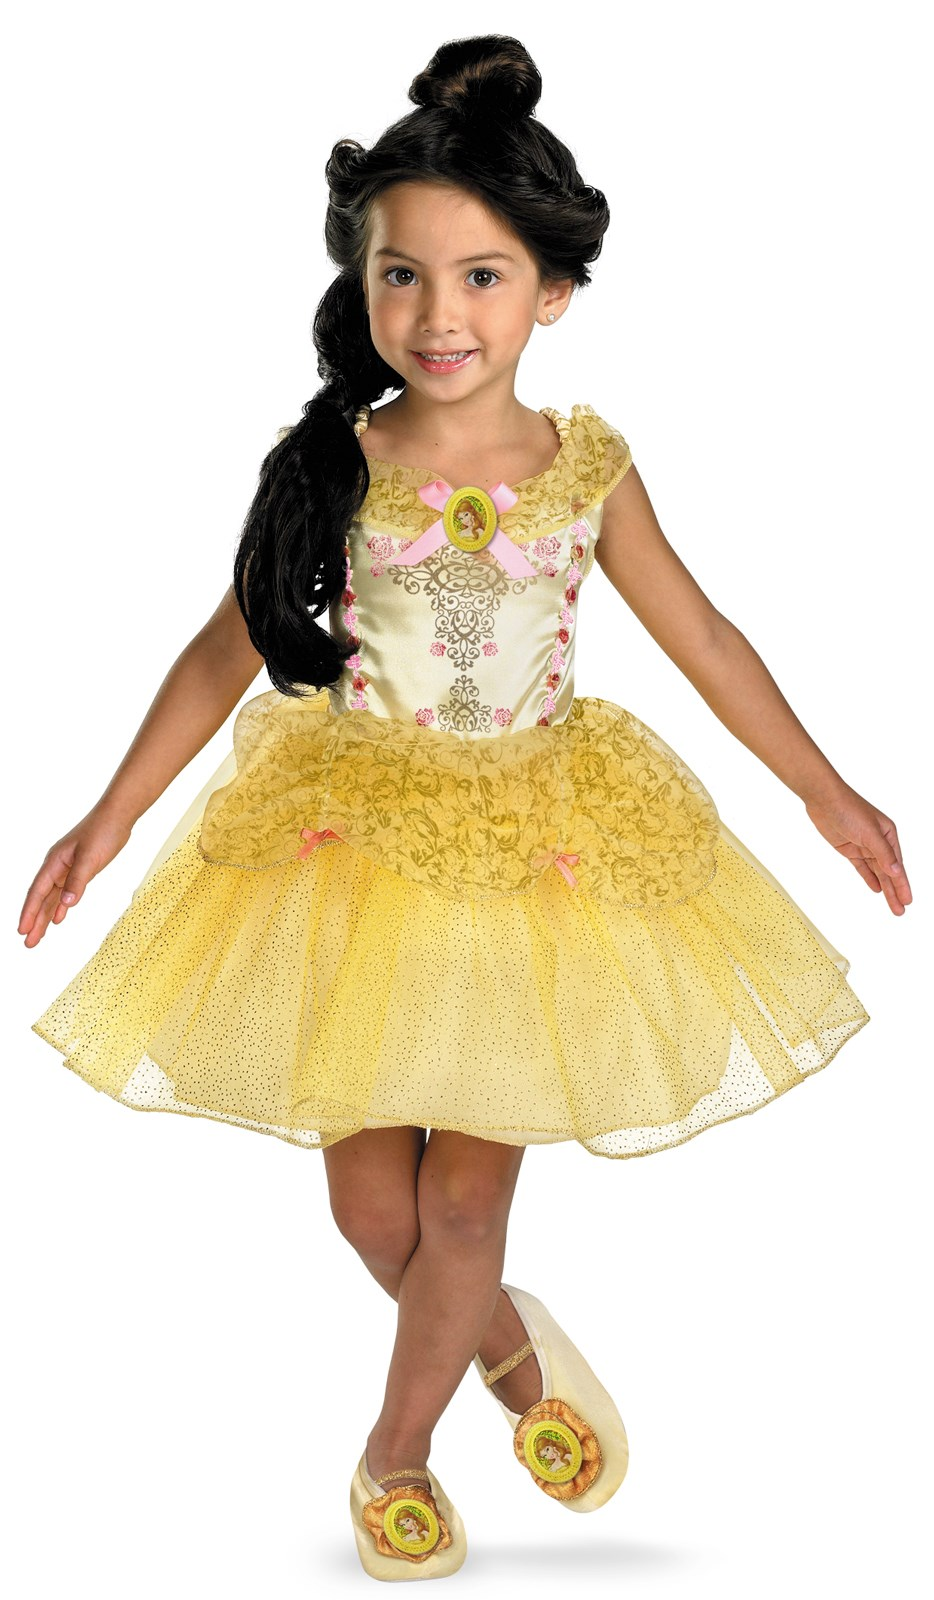 Image of Beauty and the Beast Belle Ballerina Toddler / Child Costume Child (4-6x)